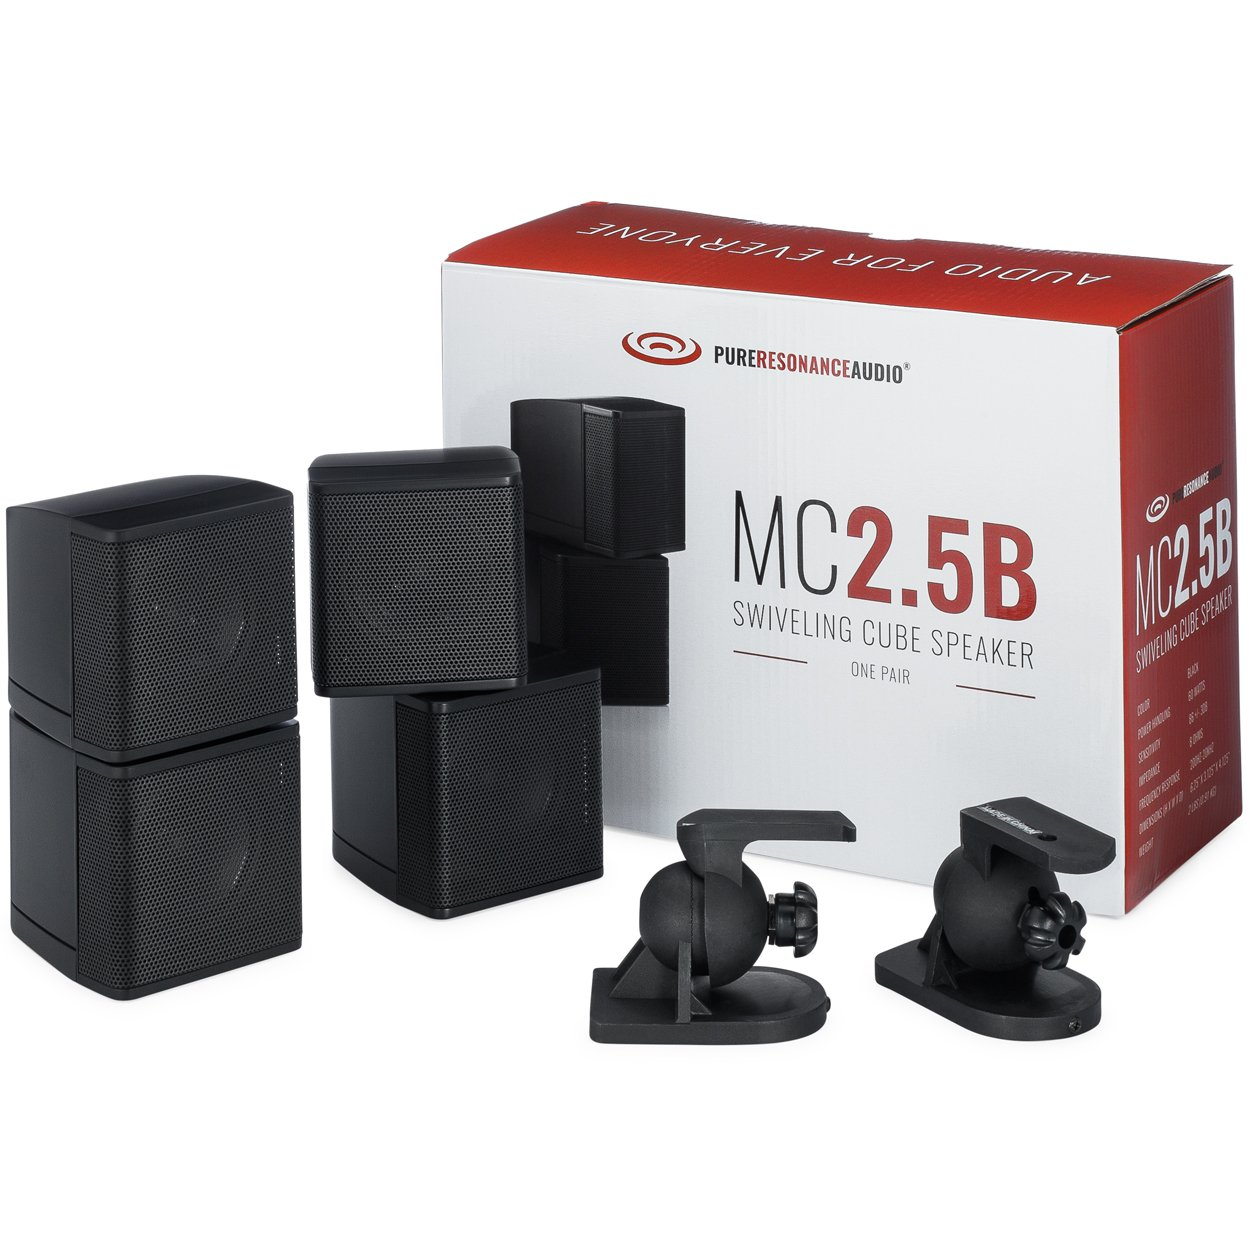 Pure Resonance Audio MC2.5B - Mini Cube Speaker Dual 2.5'' Swivel Surround Sound (Pair, Black) by Pure Resonance Audio